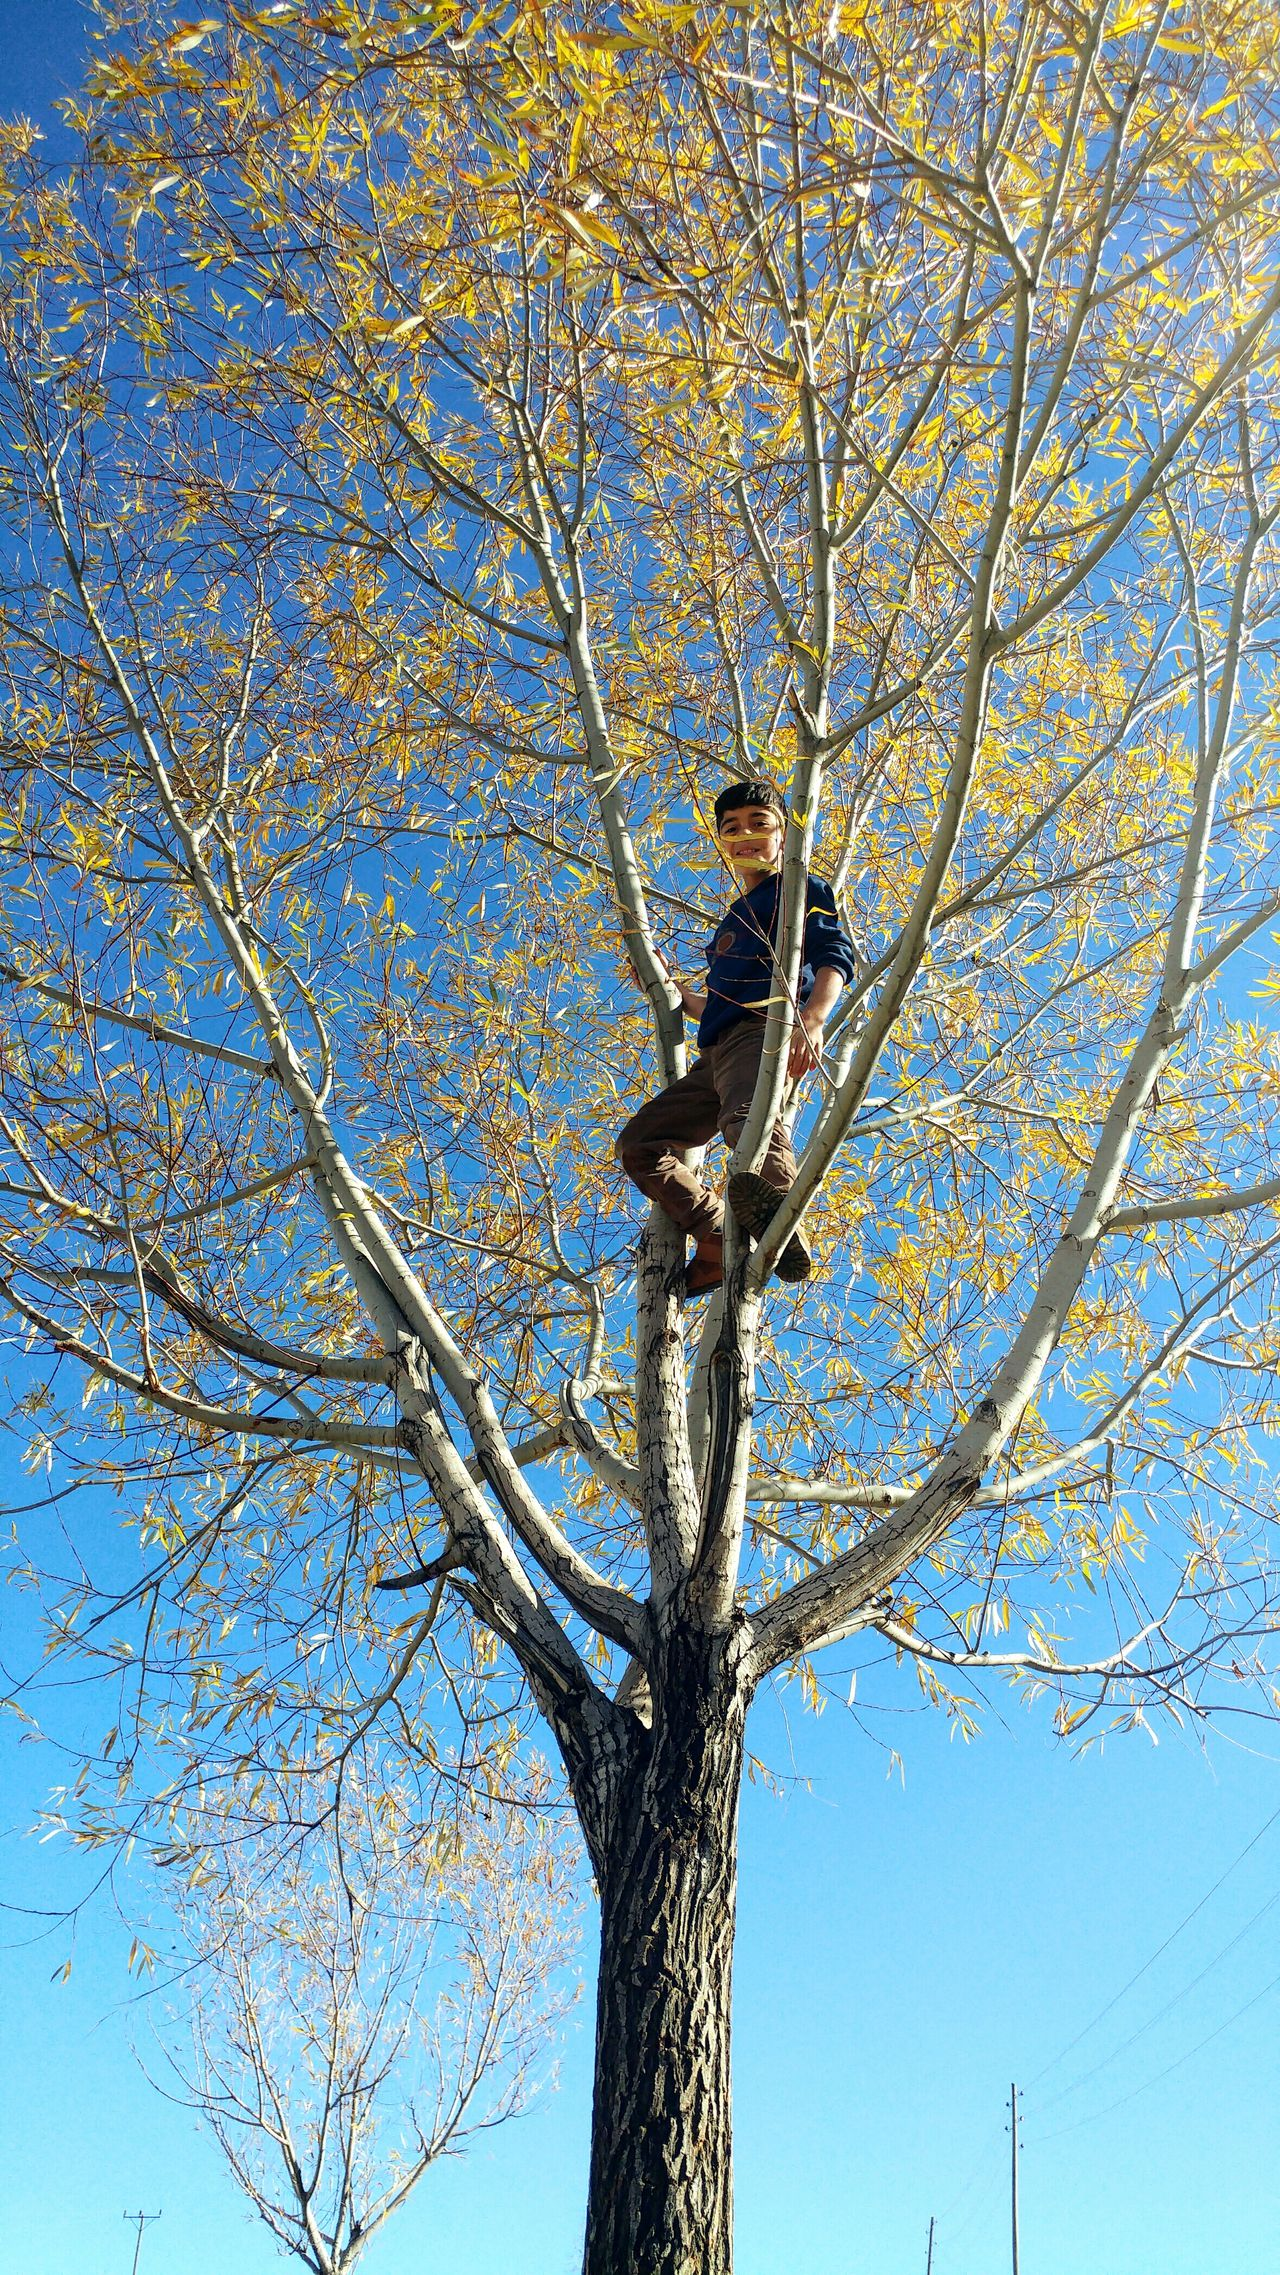 Tree Clear Sky Beauty In Nature Childhood Children Photography Köy öğretmeni Olmak Nature_collection Landscape_collection EyeEmNatureLover Loving Children Fall Beauty Villagescape Freshness Being A Teacher Portrait Boys My Student <3 Children Only Loving Kids Low Angle View One Person Branch Outdoors